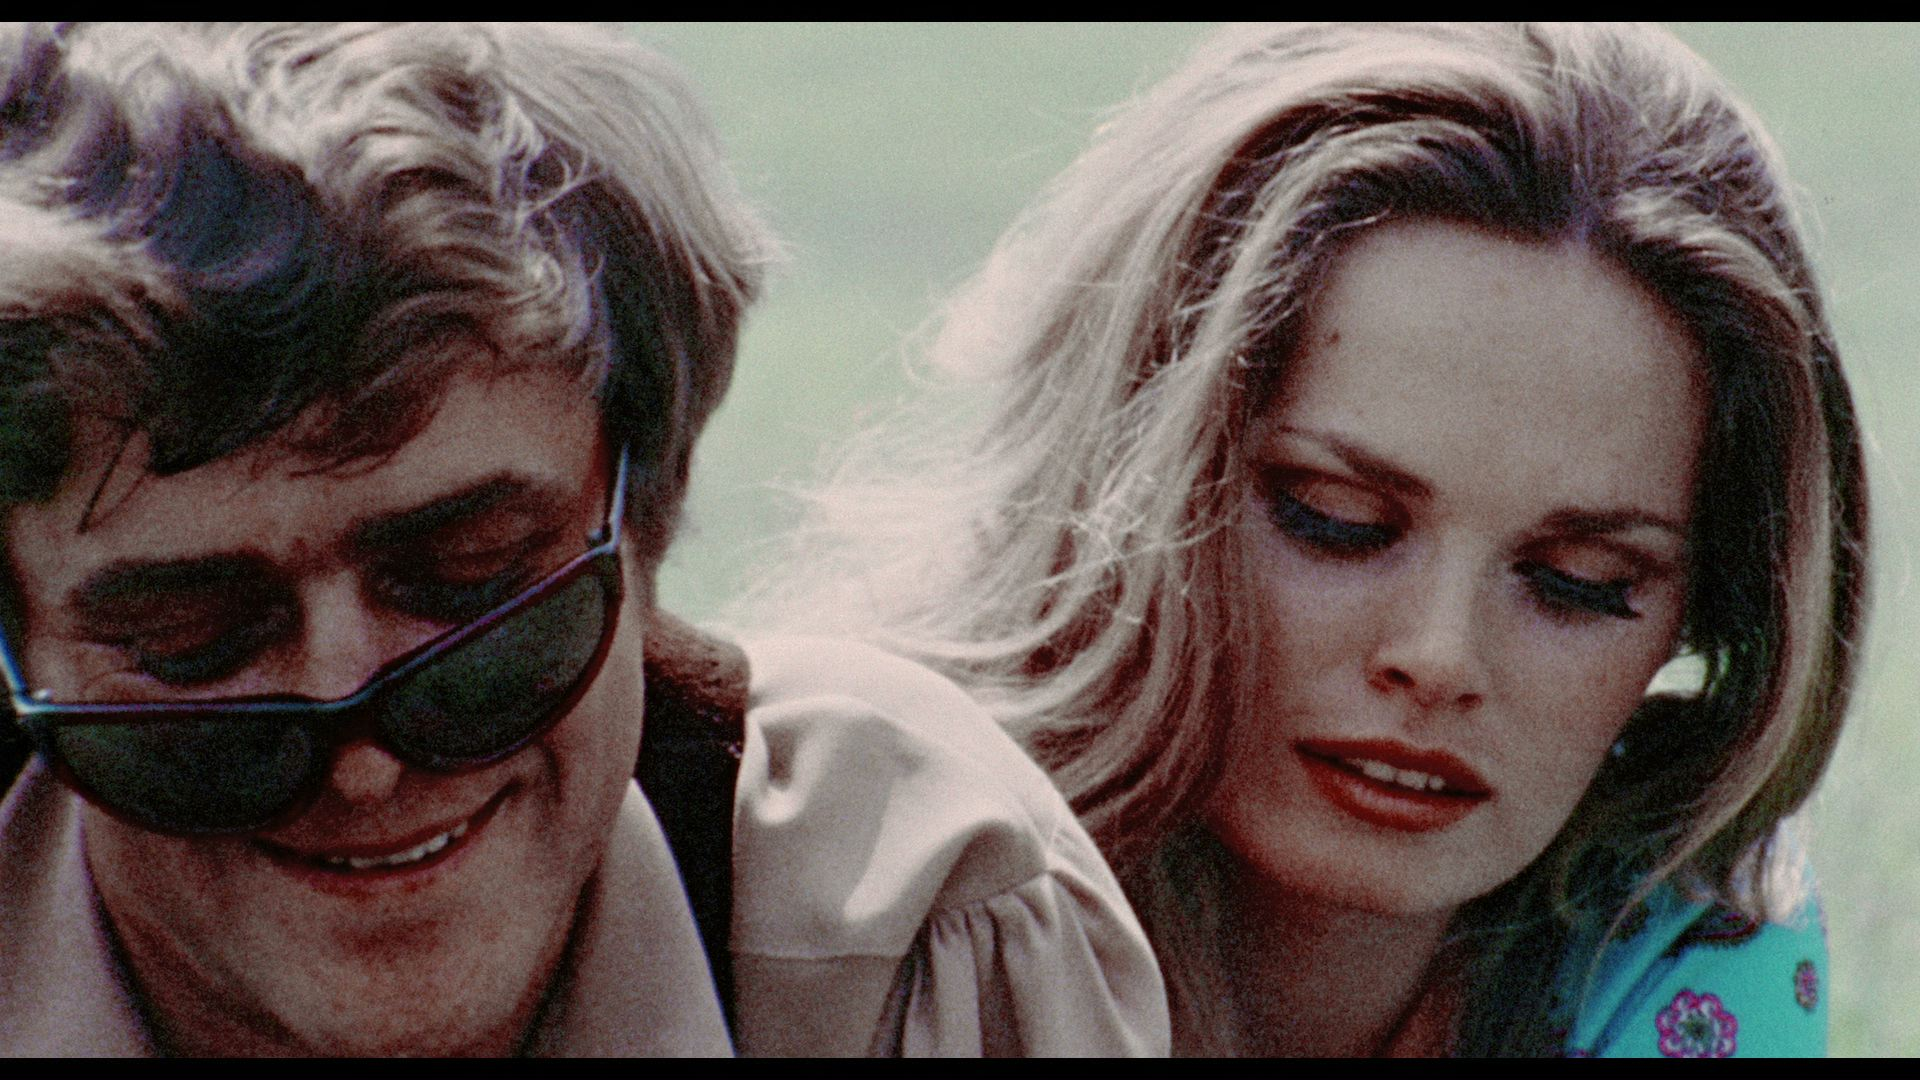 There's Always Vanilla is the only drama in George Romero's extensive filmography.